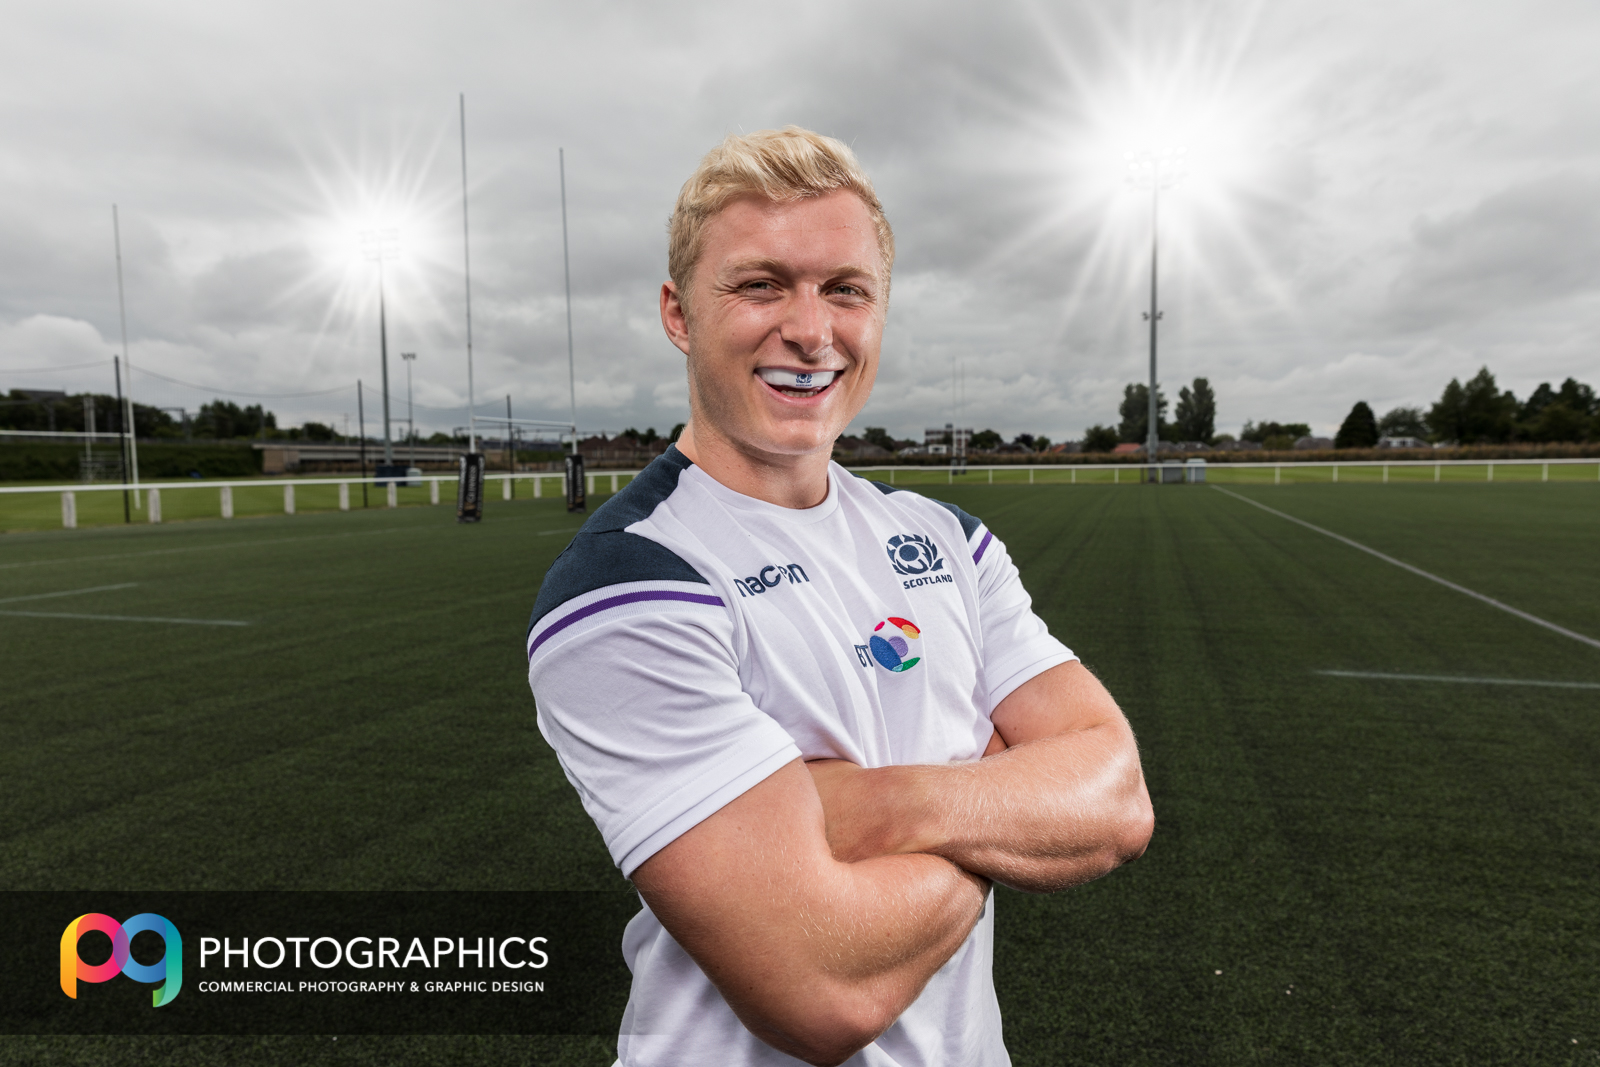 sports-rugby-portrait-photography-edinburgh-glasgow-scotland-6.jpg